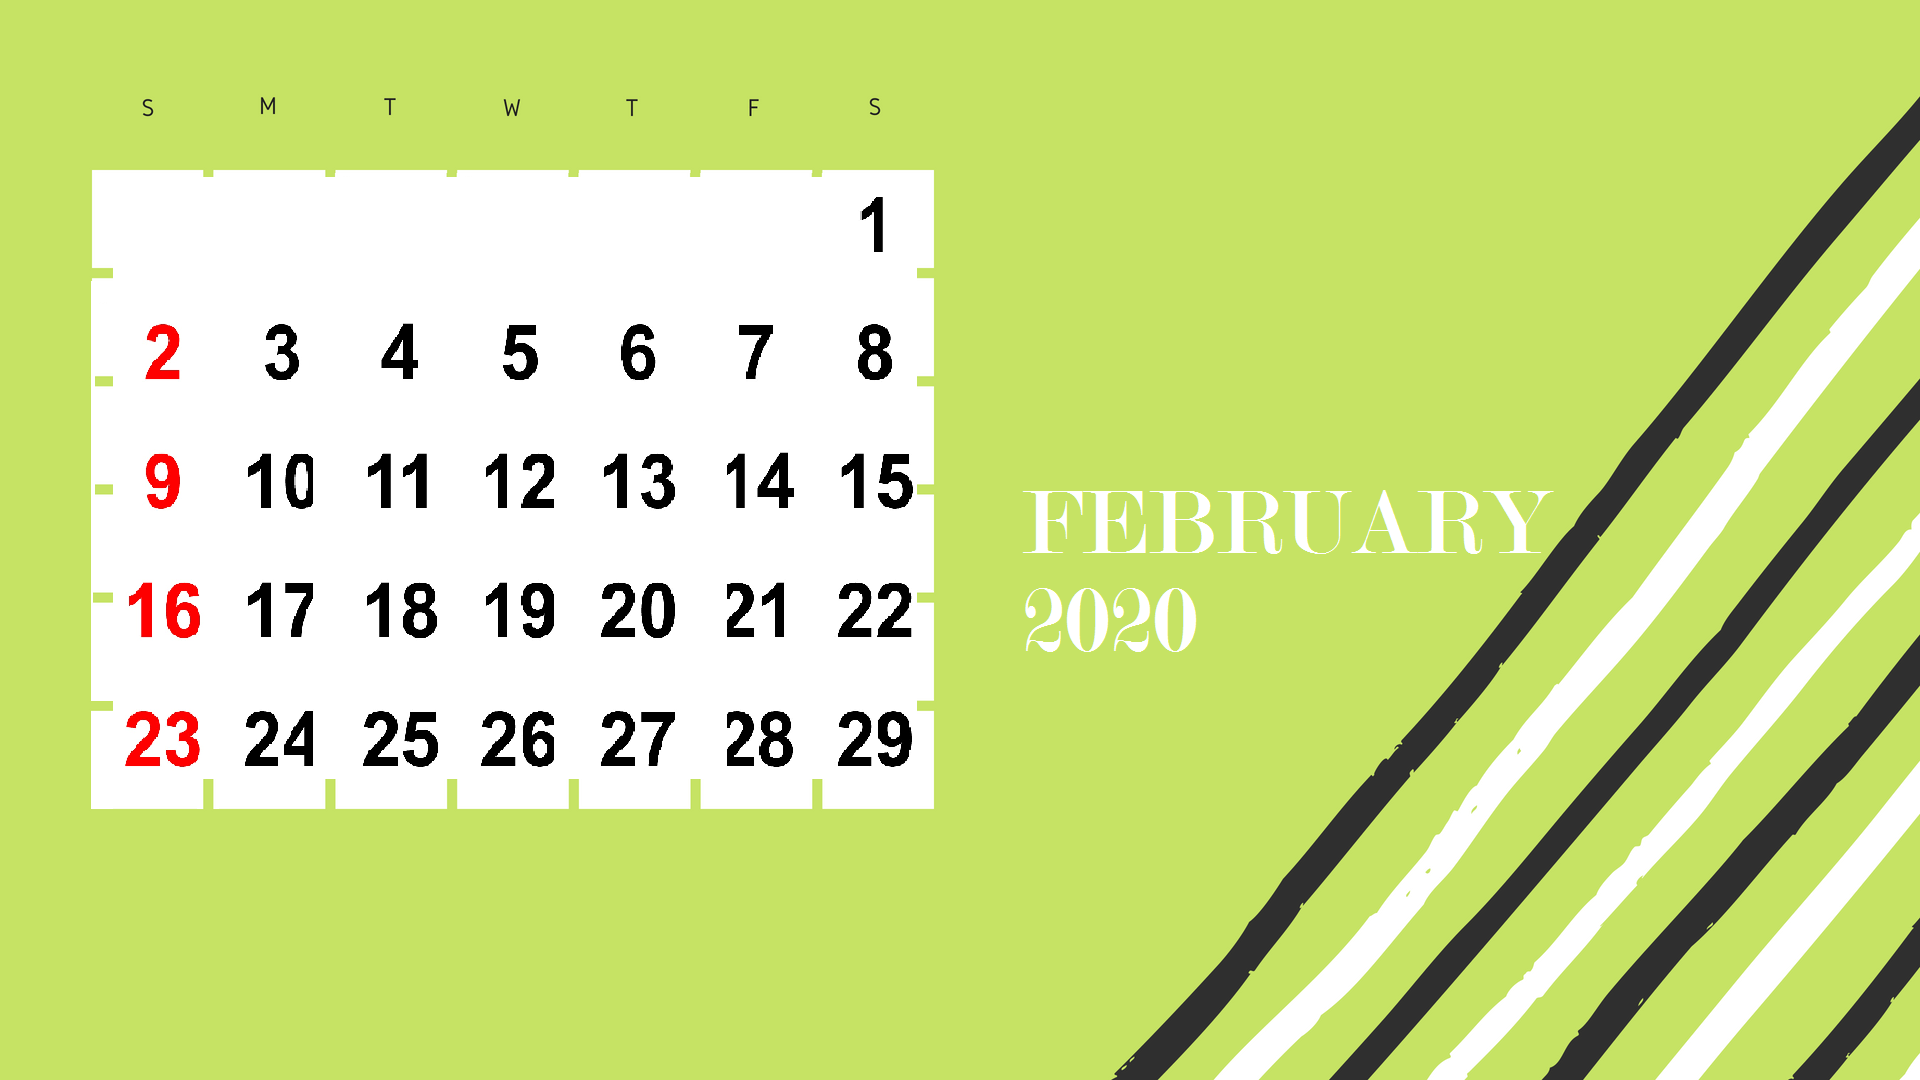 February 2020 HD Calendar Wallpaper